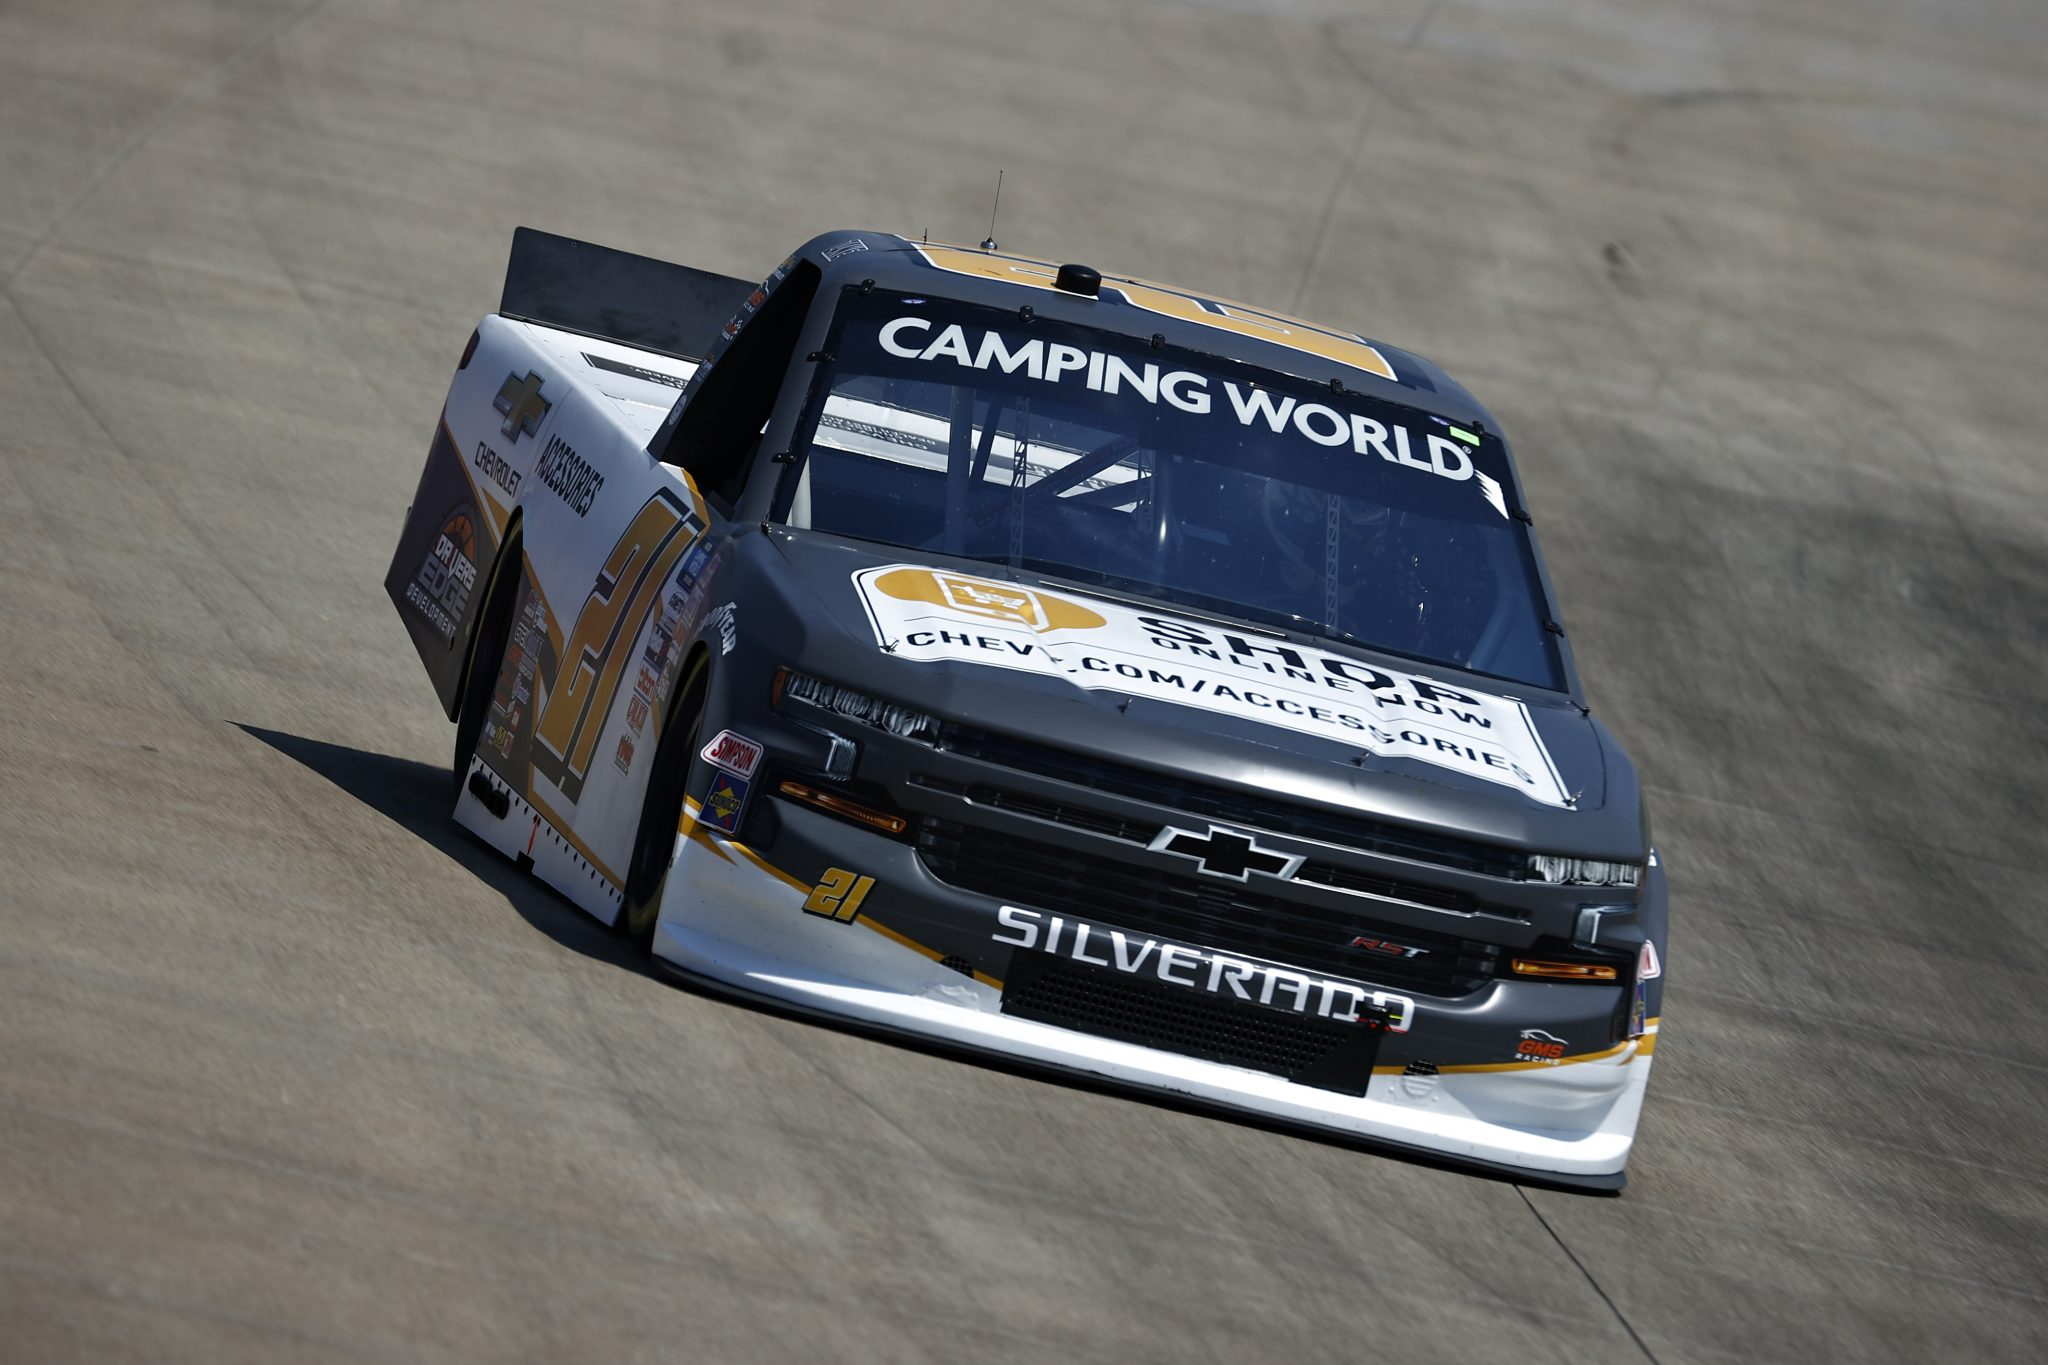 LEBANON, TENNESSEE - JUNE 18: Zane Smith, driver of the #21 Chevy.com/Accessories Chevrolet, drives during practice for the NASCAR Camping World Truck Series Rackley Roofing 200 at Nashville Superspeedway on June 18, 2021 in Lebanon, Tennessee. (Photo by Jared C. Tilton/Getty Images) | Getty Images